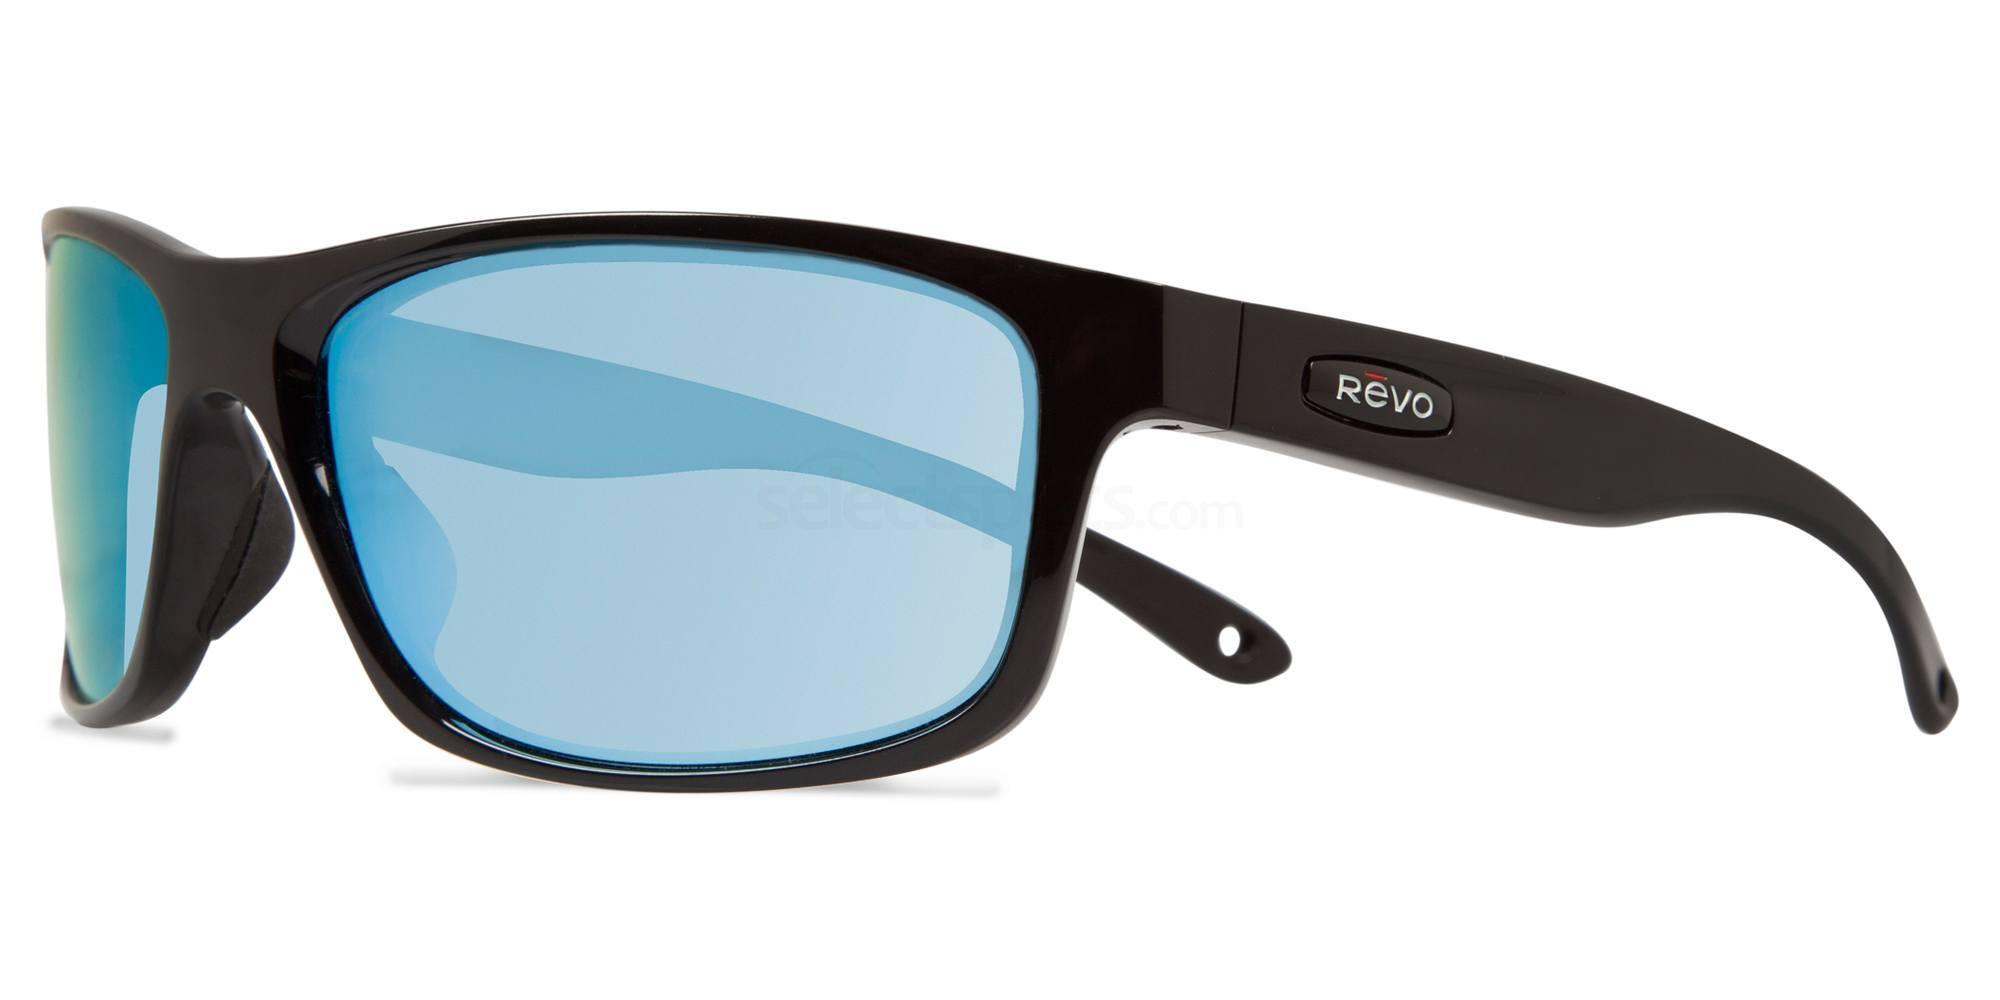 01BL Harness - 354071 Sunglasses, Revo